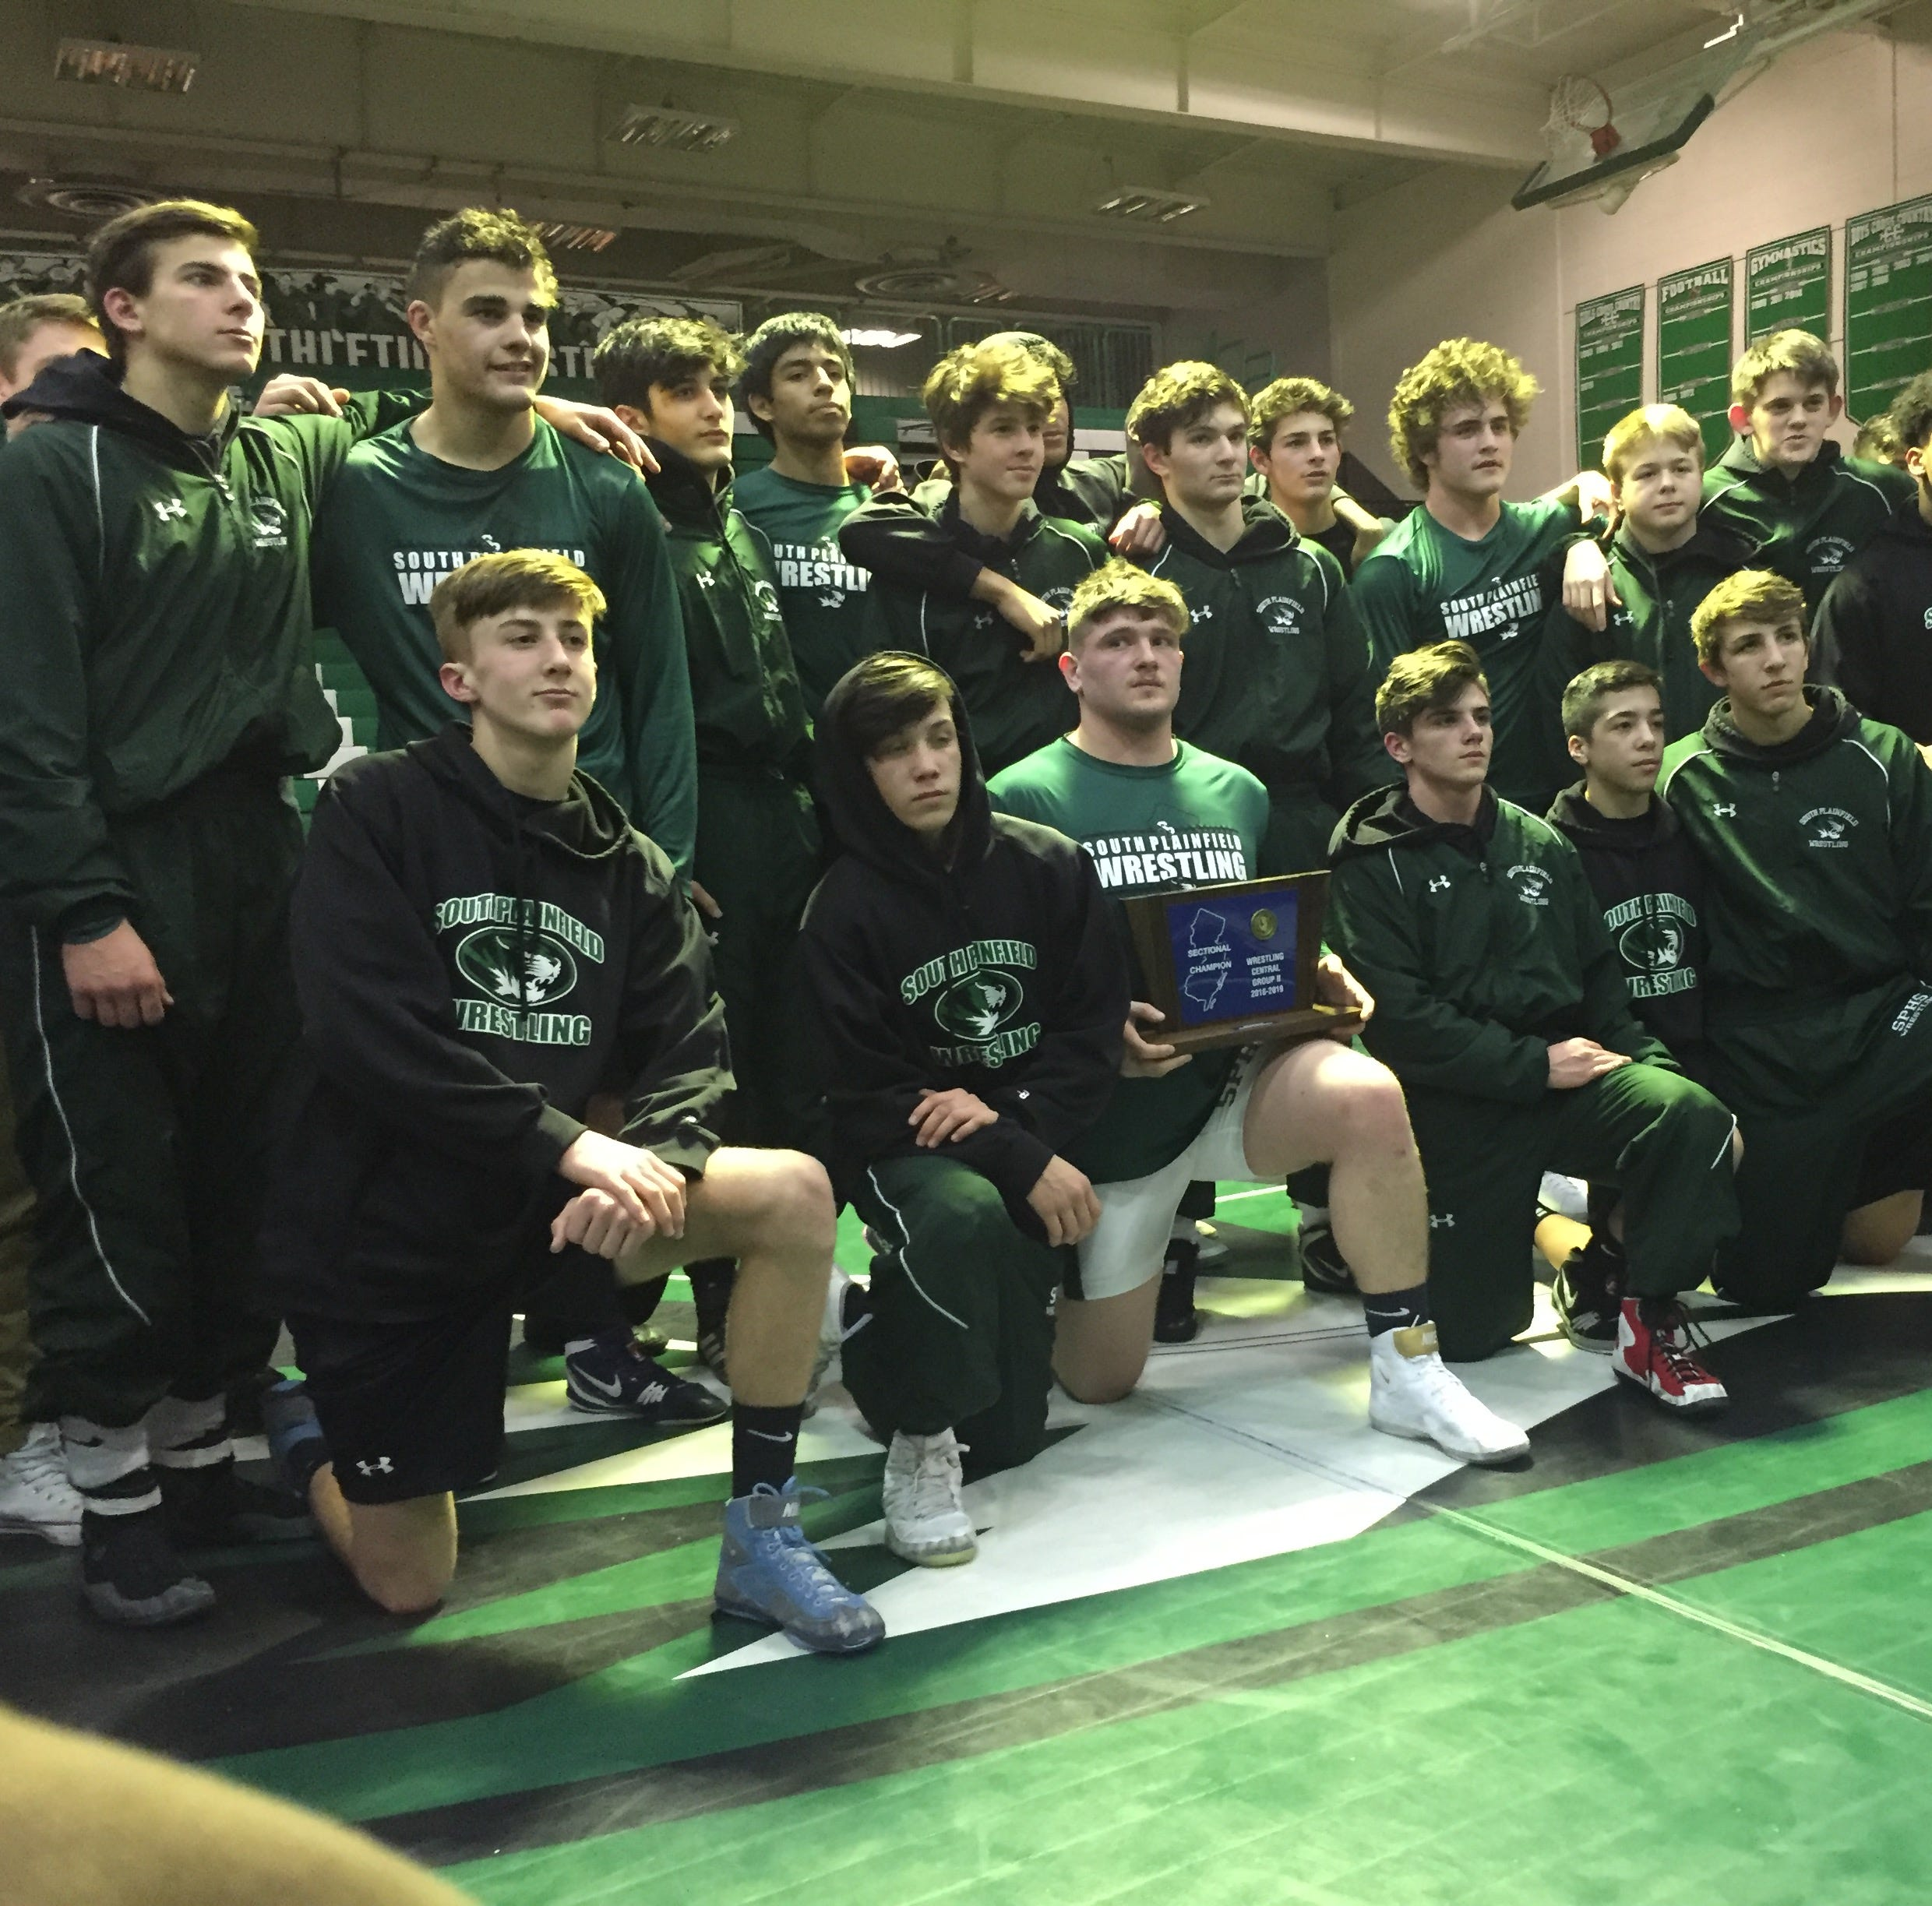 NJ wrestling: After winning 16th sectional title, South Plainfield focuses on group crown